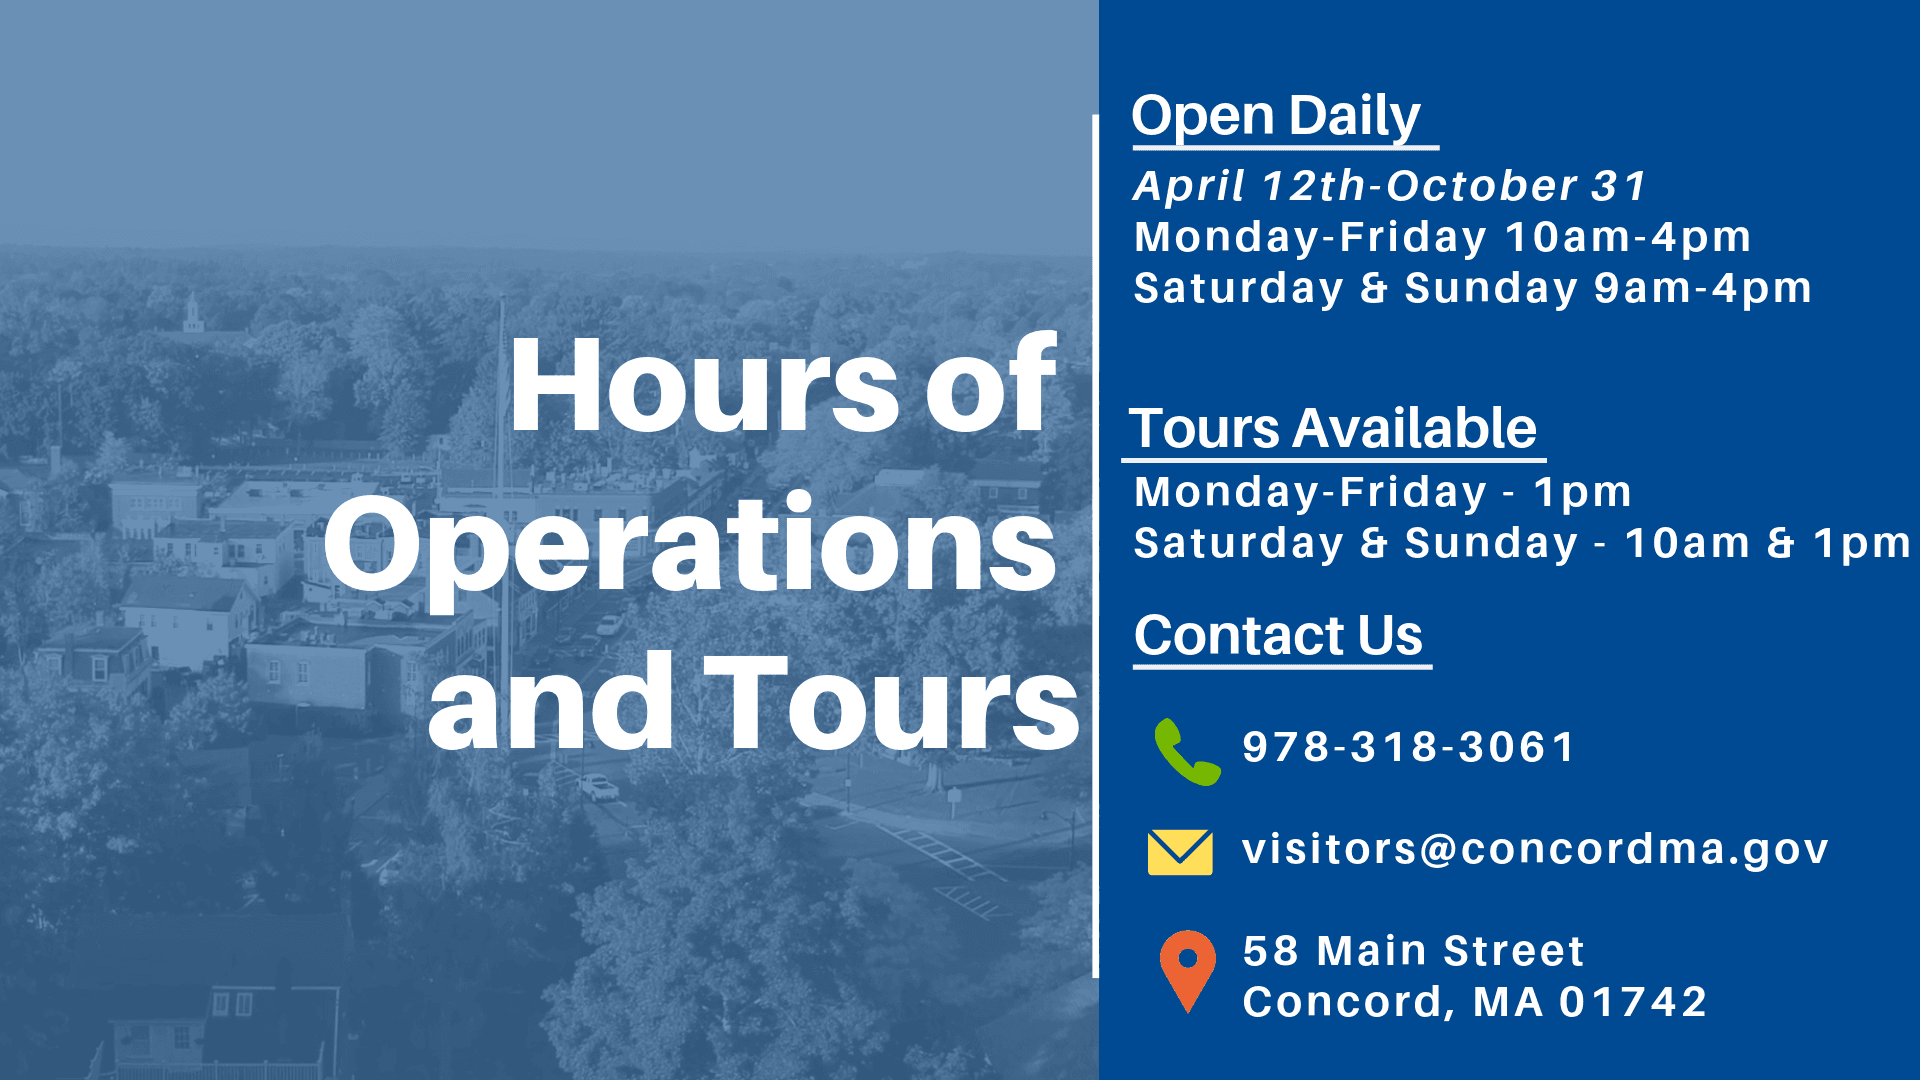 Hours of Operations and Tours Information, April 12 to Oct 31